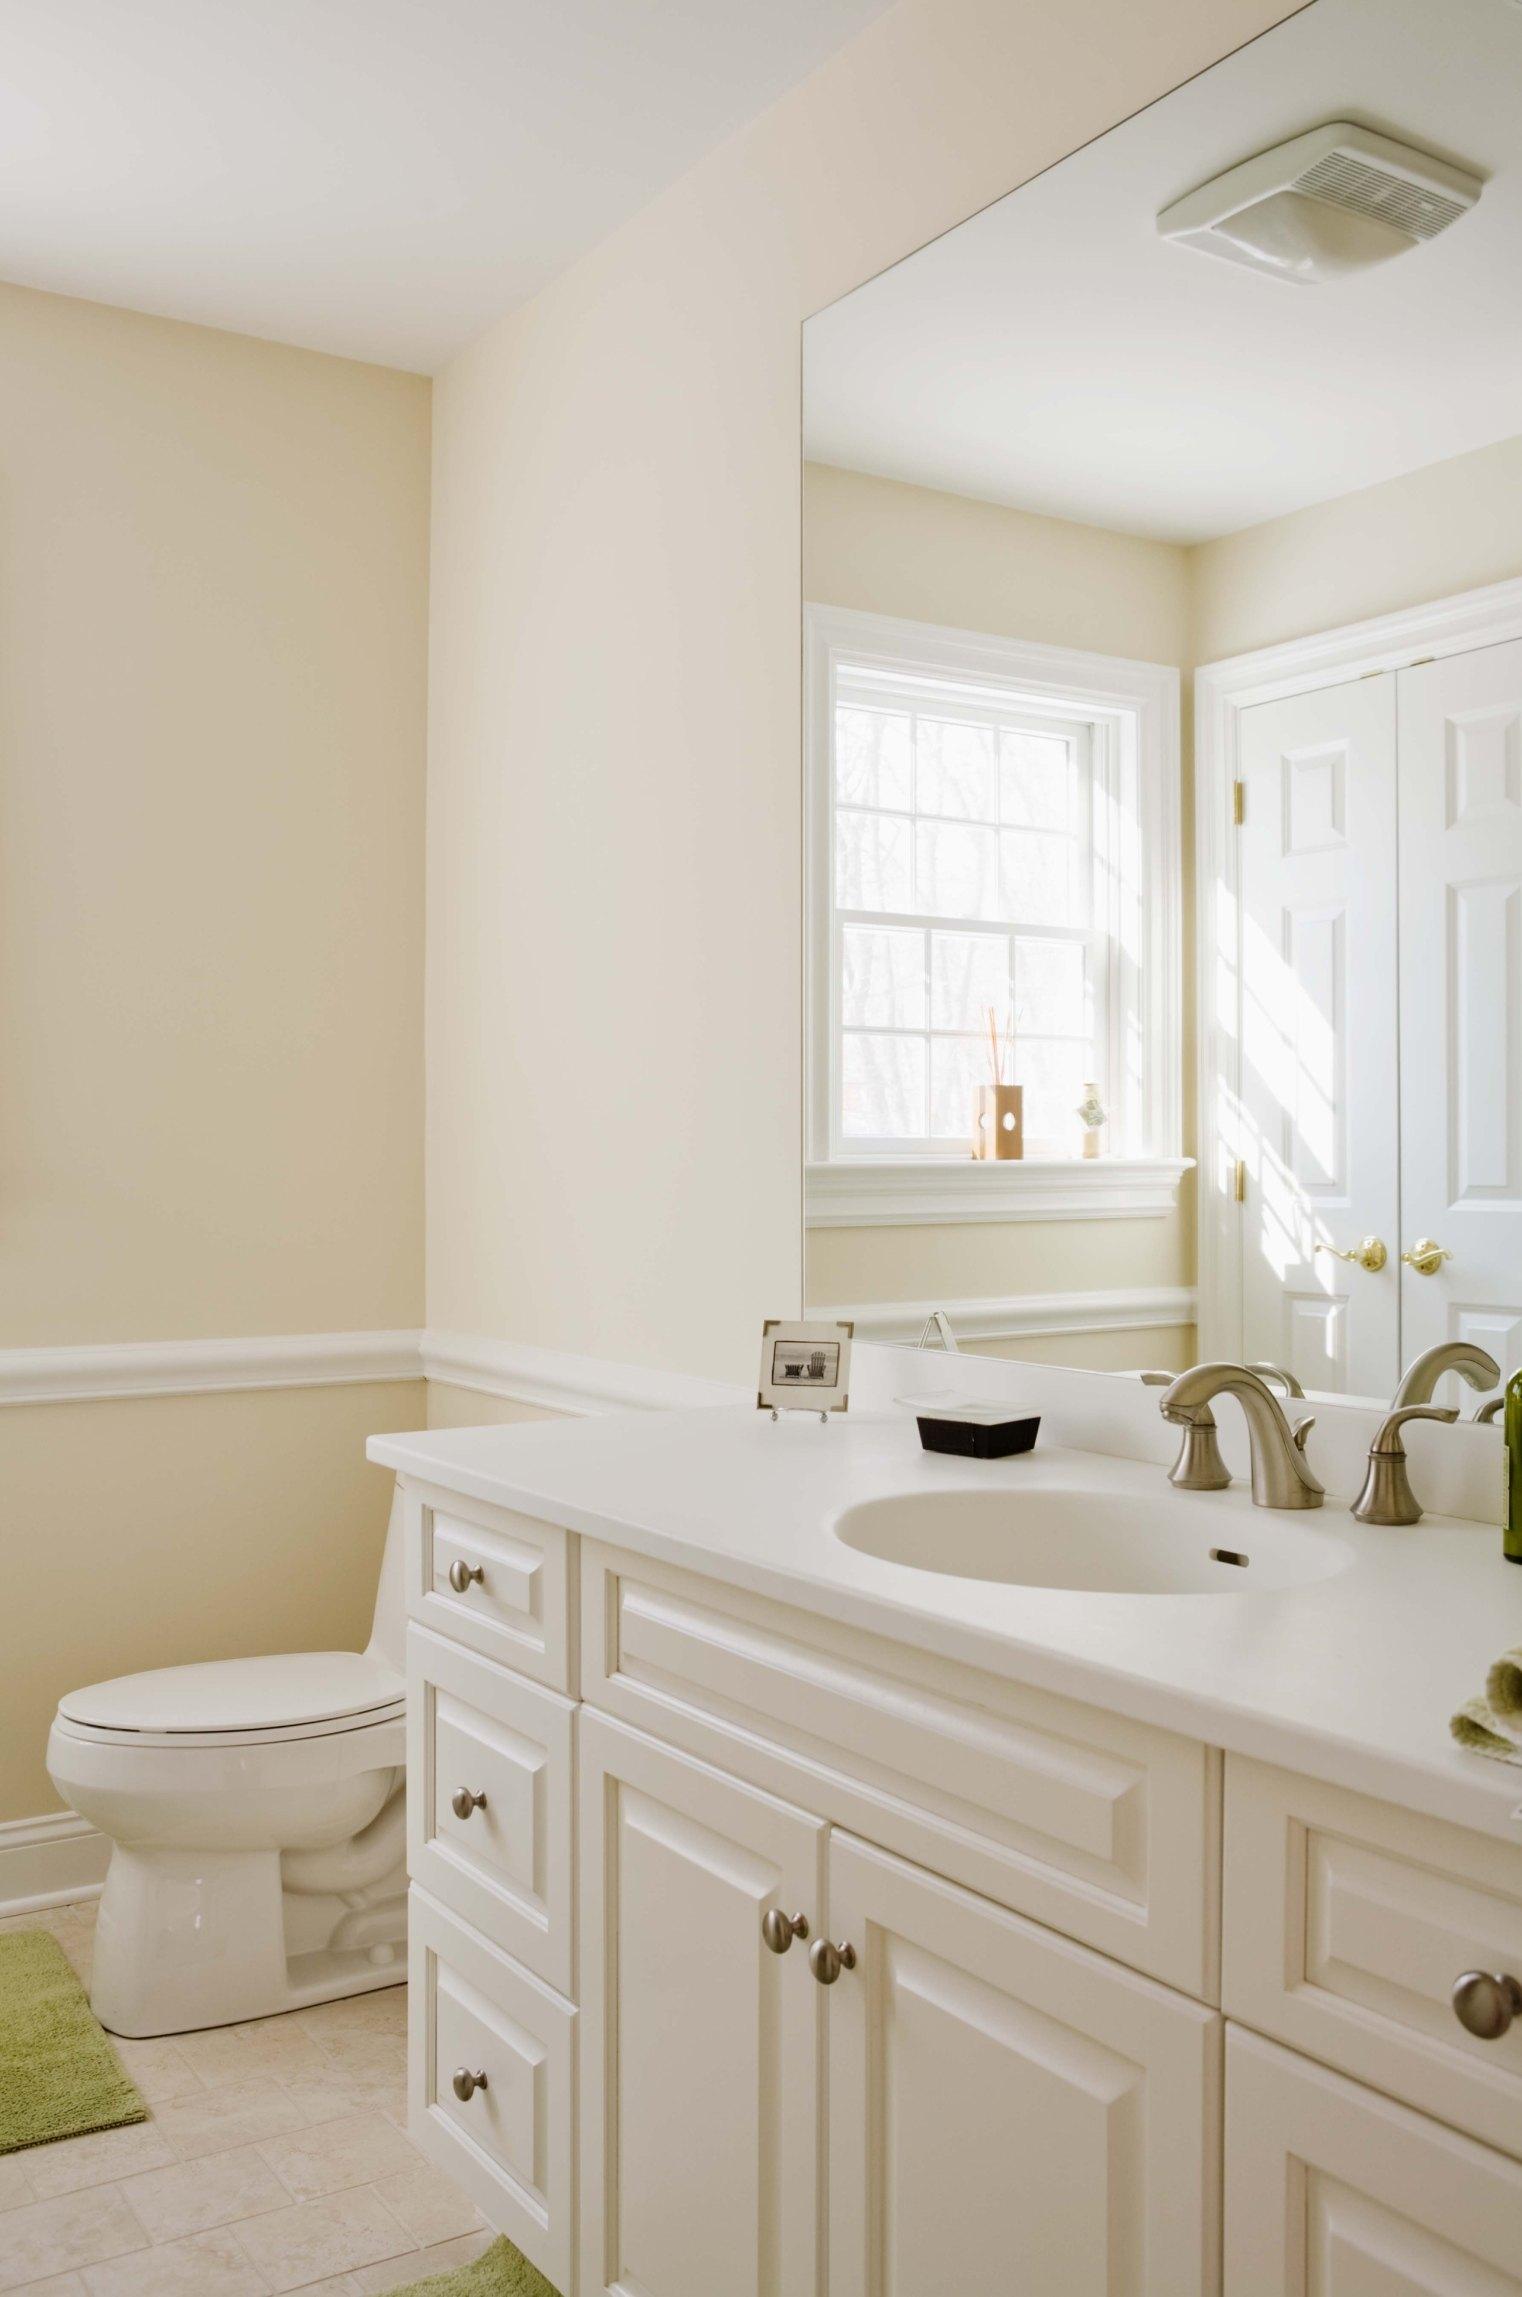 What Sheen Of Paint To Use In Bathroom Ehow